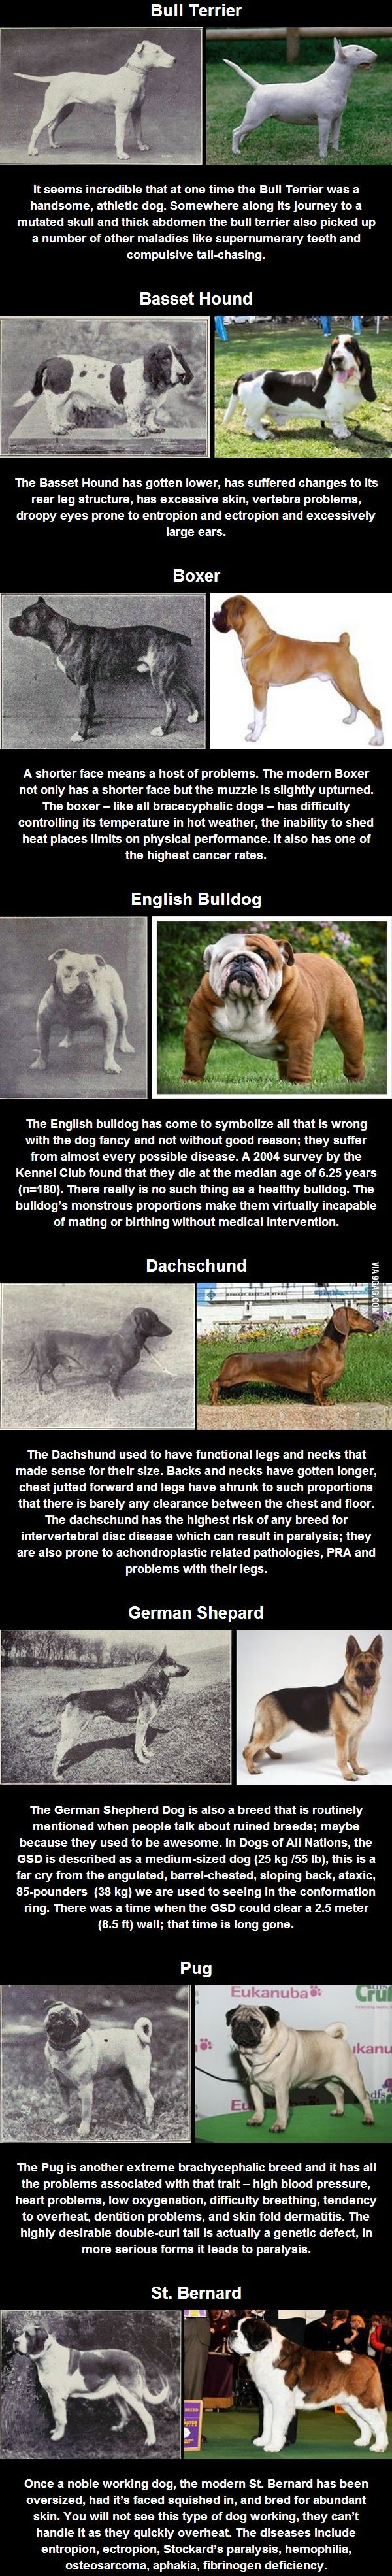 100 years of selective breeding-sad and i believe very true that we breed dogs to be what we want when they were perfectly fine and healthier the way they were